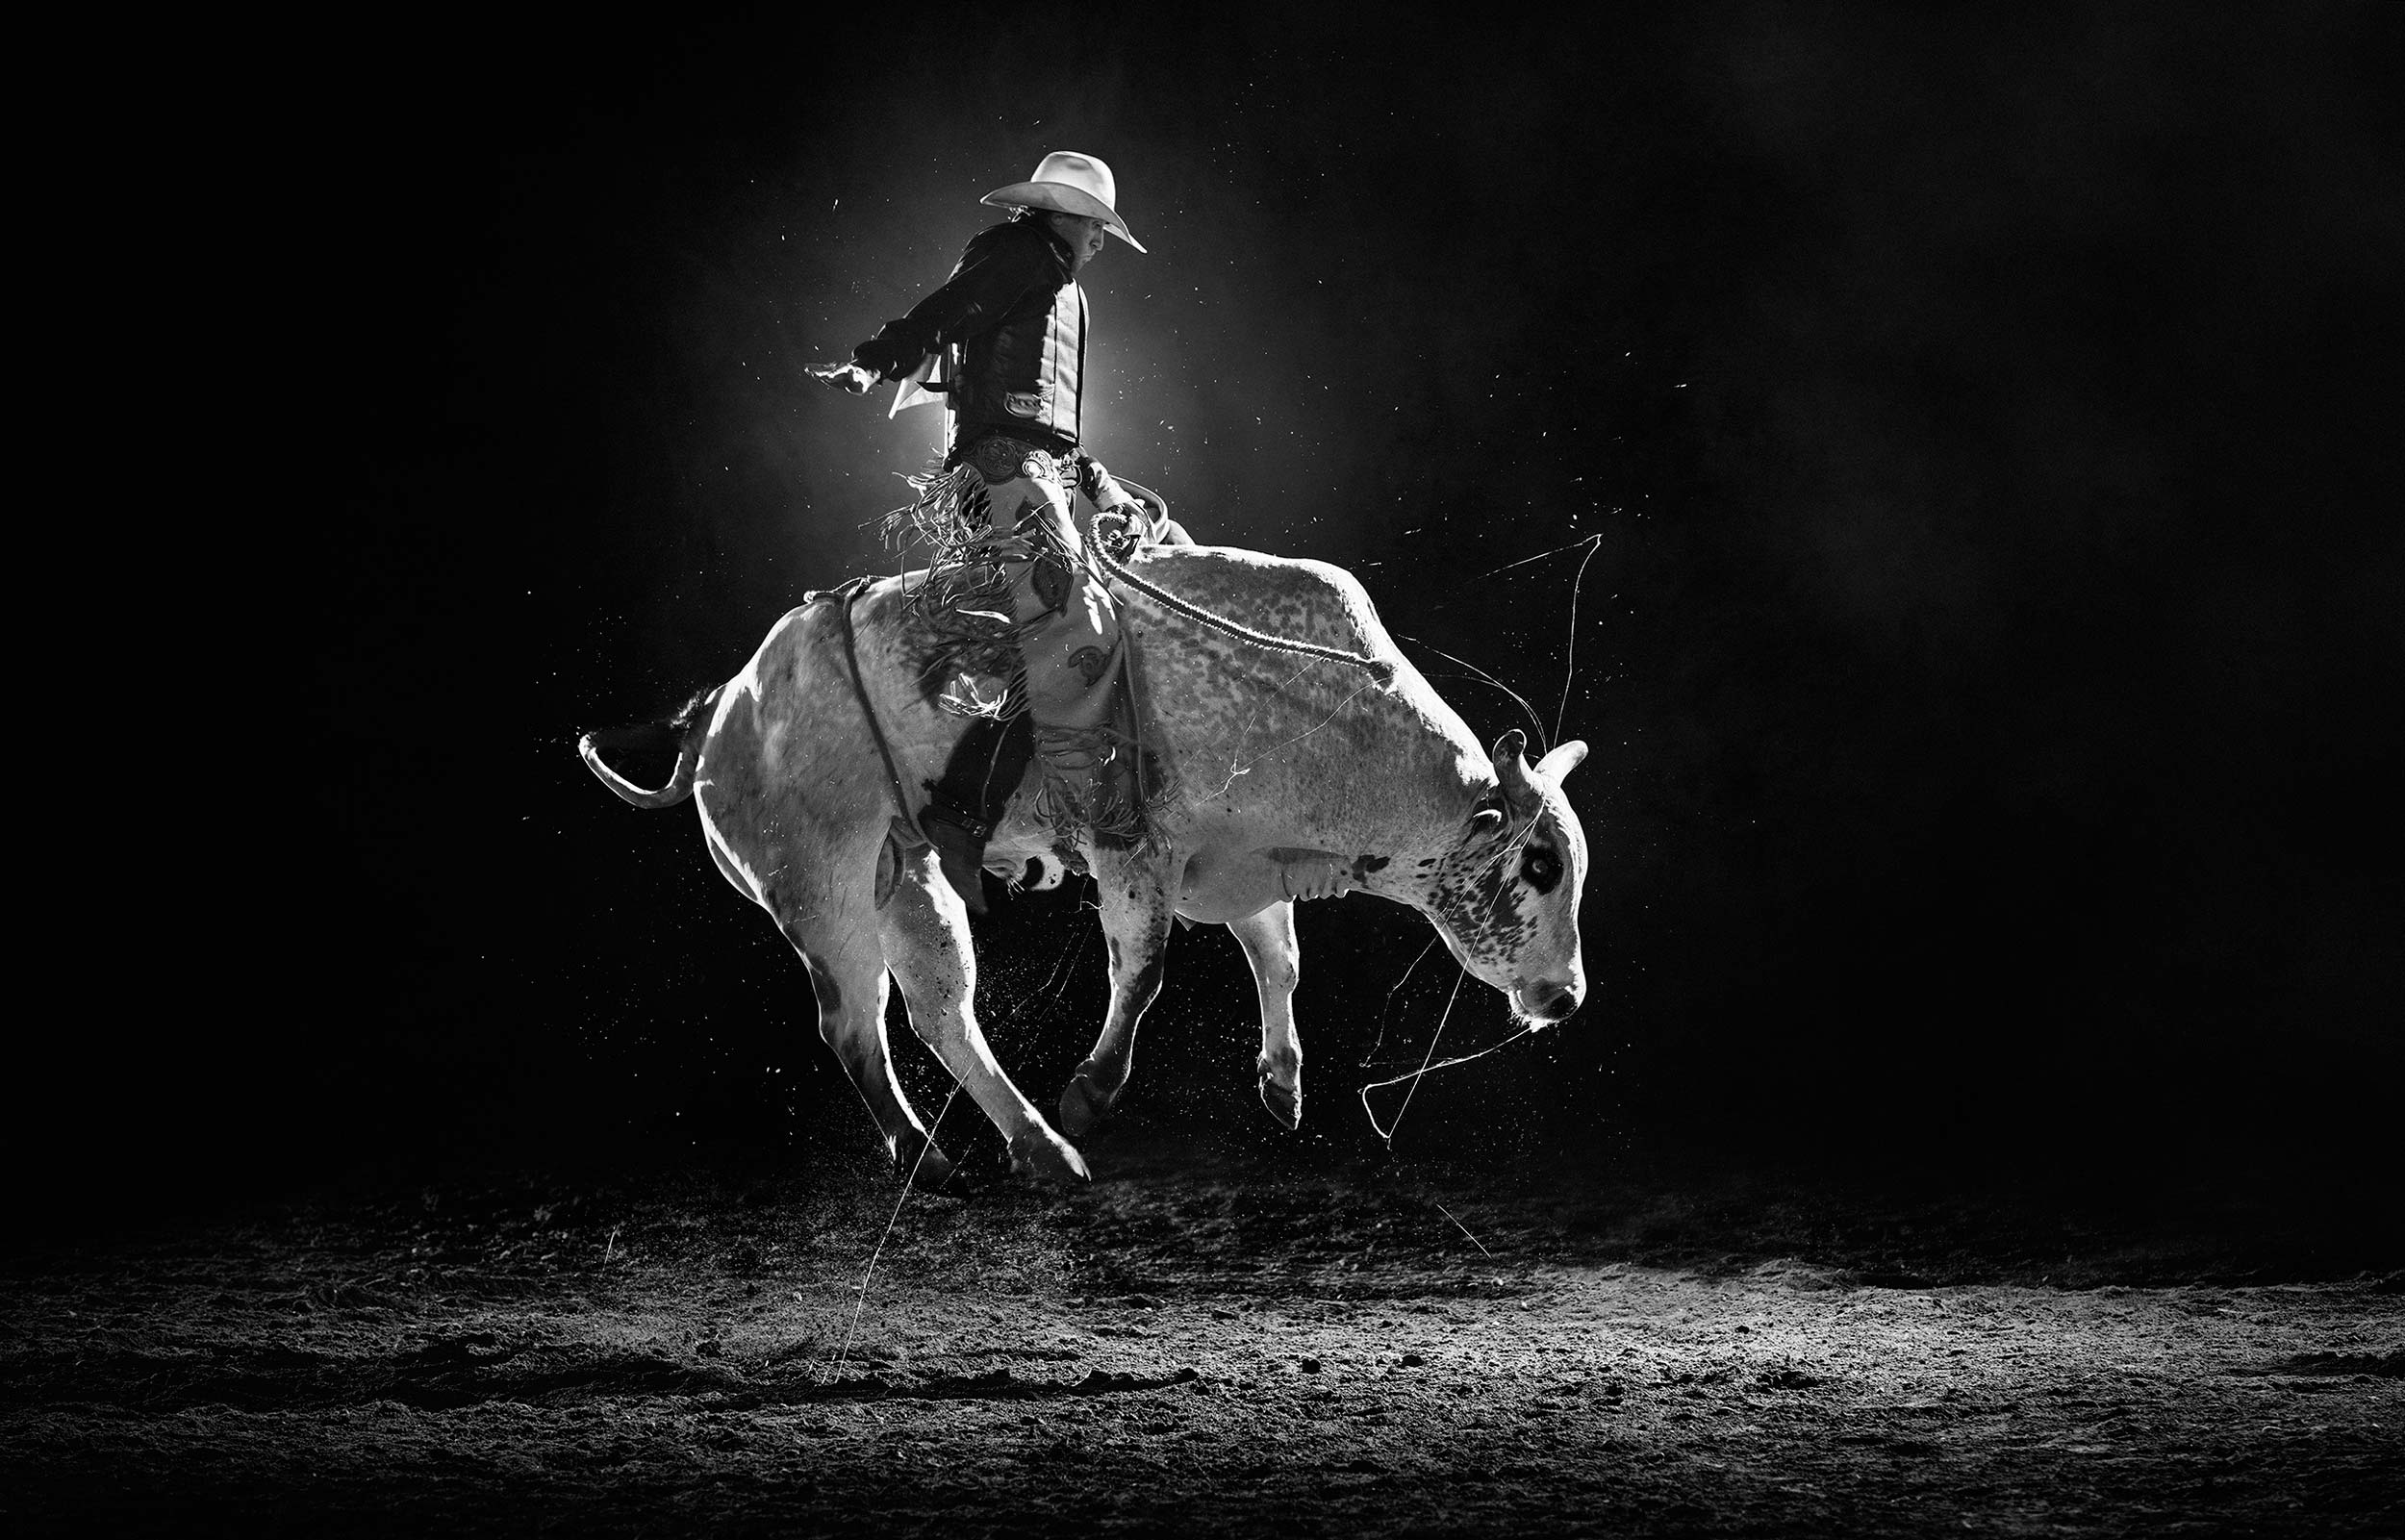 004_RODEO_11004a